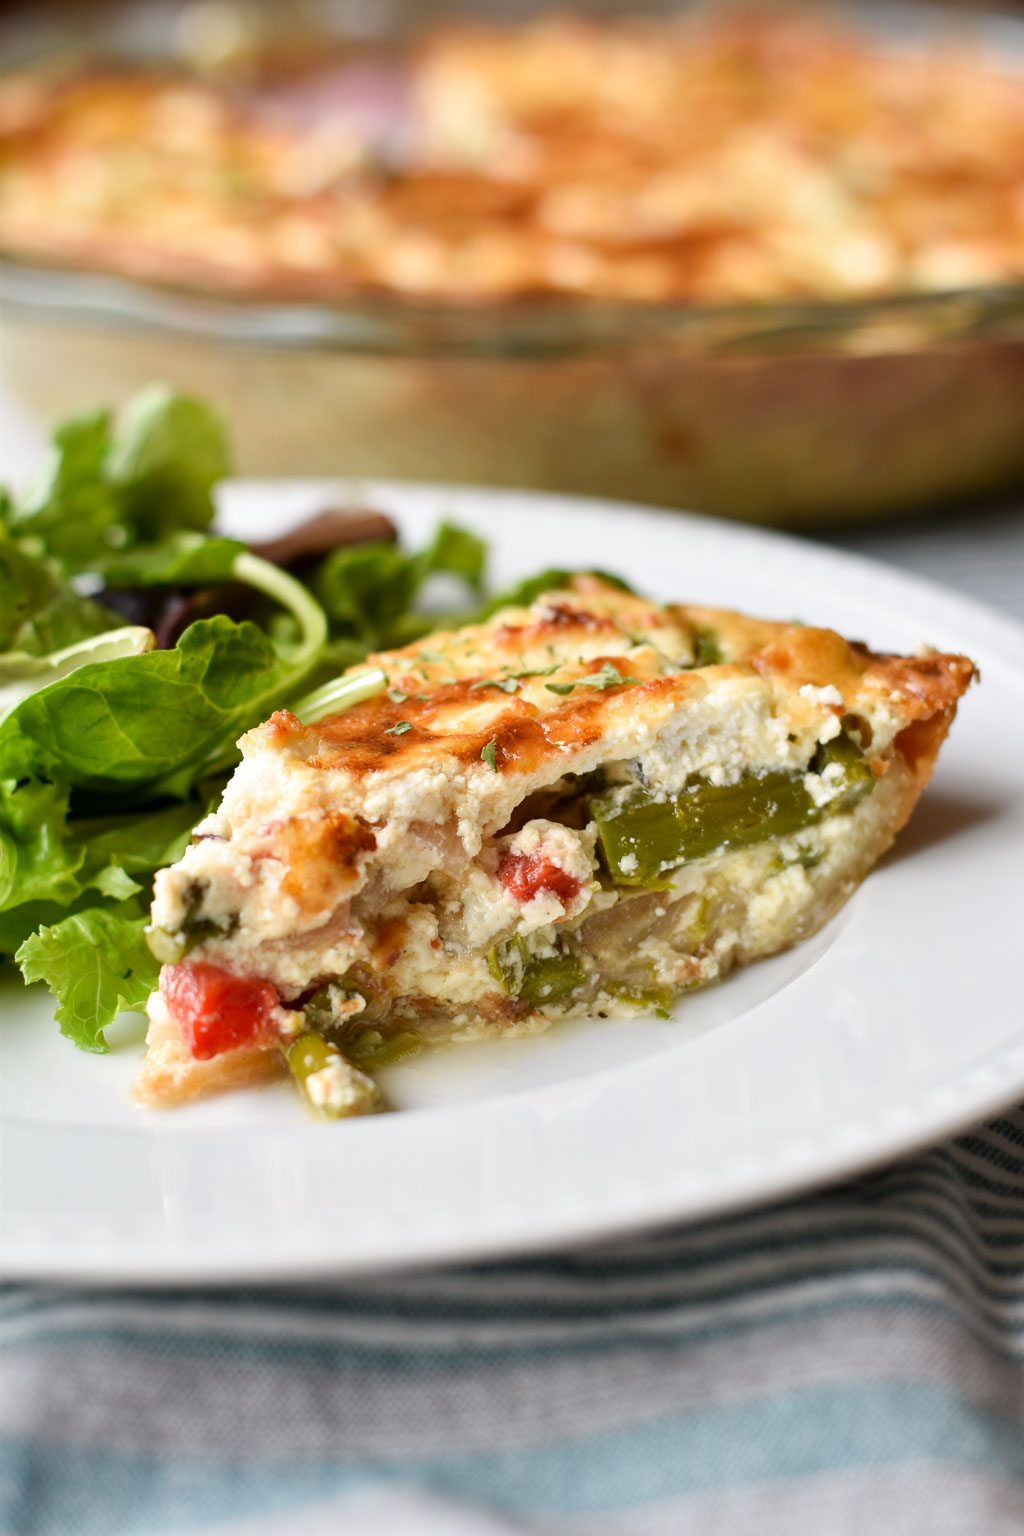 Asparagus, Goat Cheese, and Roasted Red Pepper Quiche